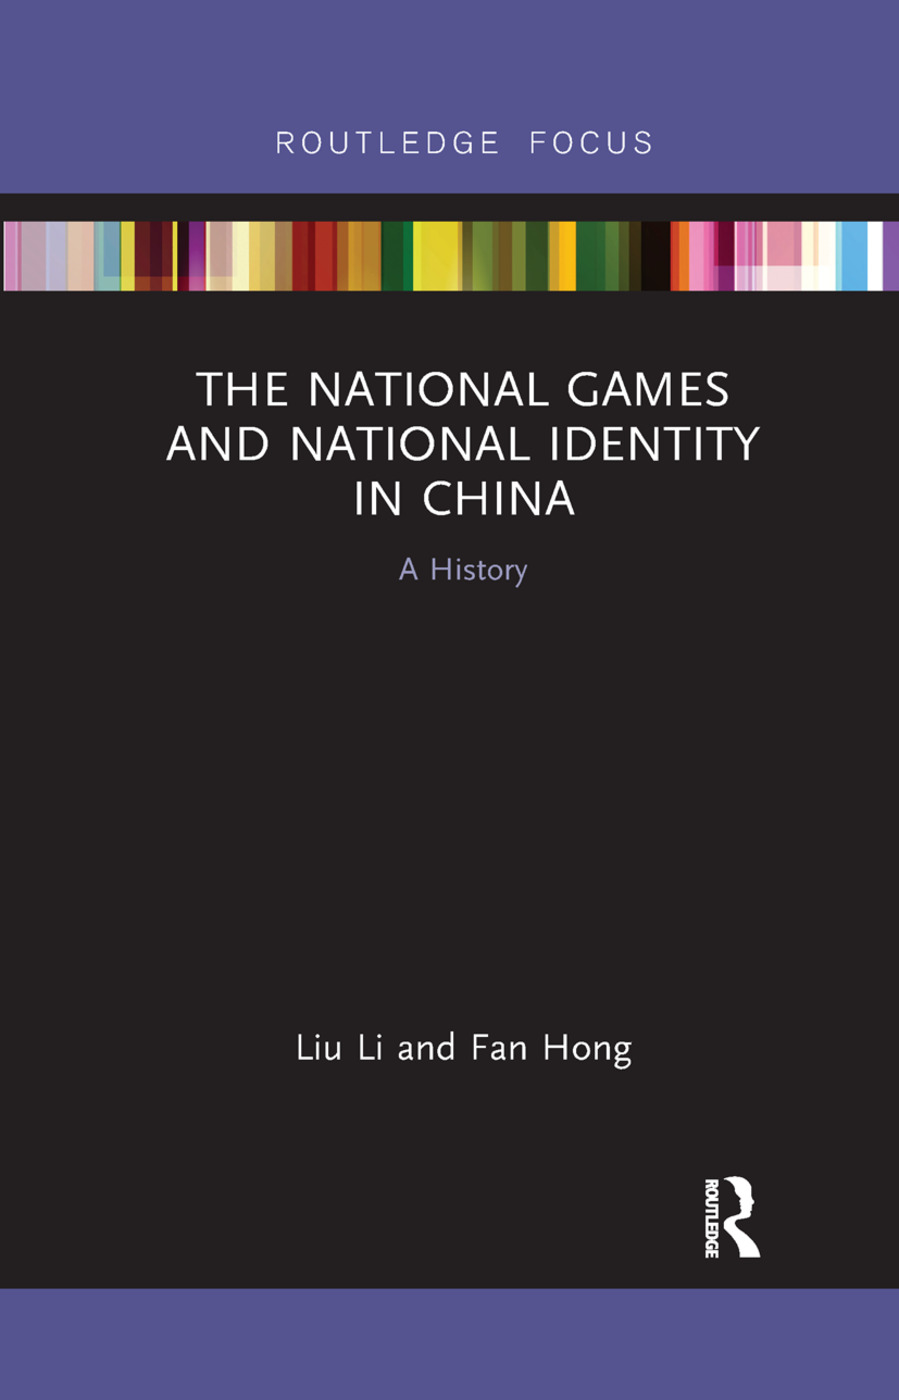 The National Games and National Identity in China